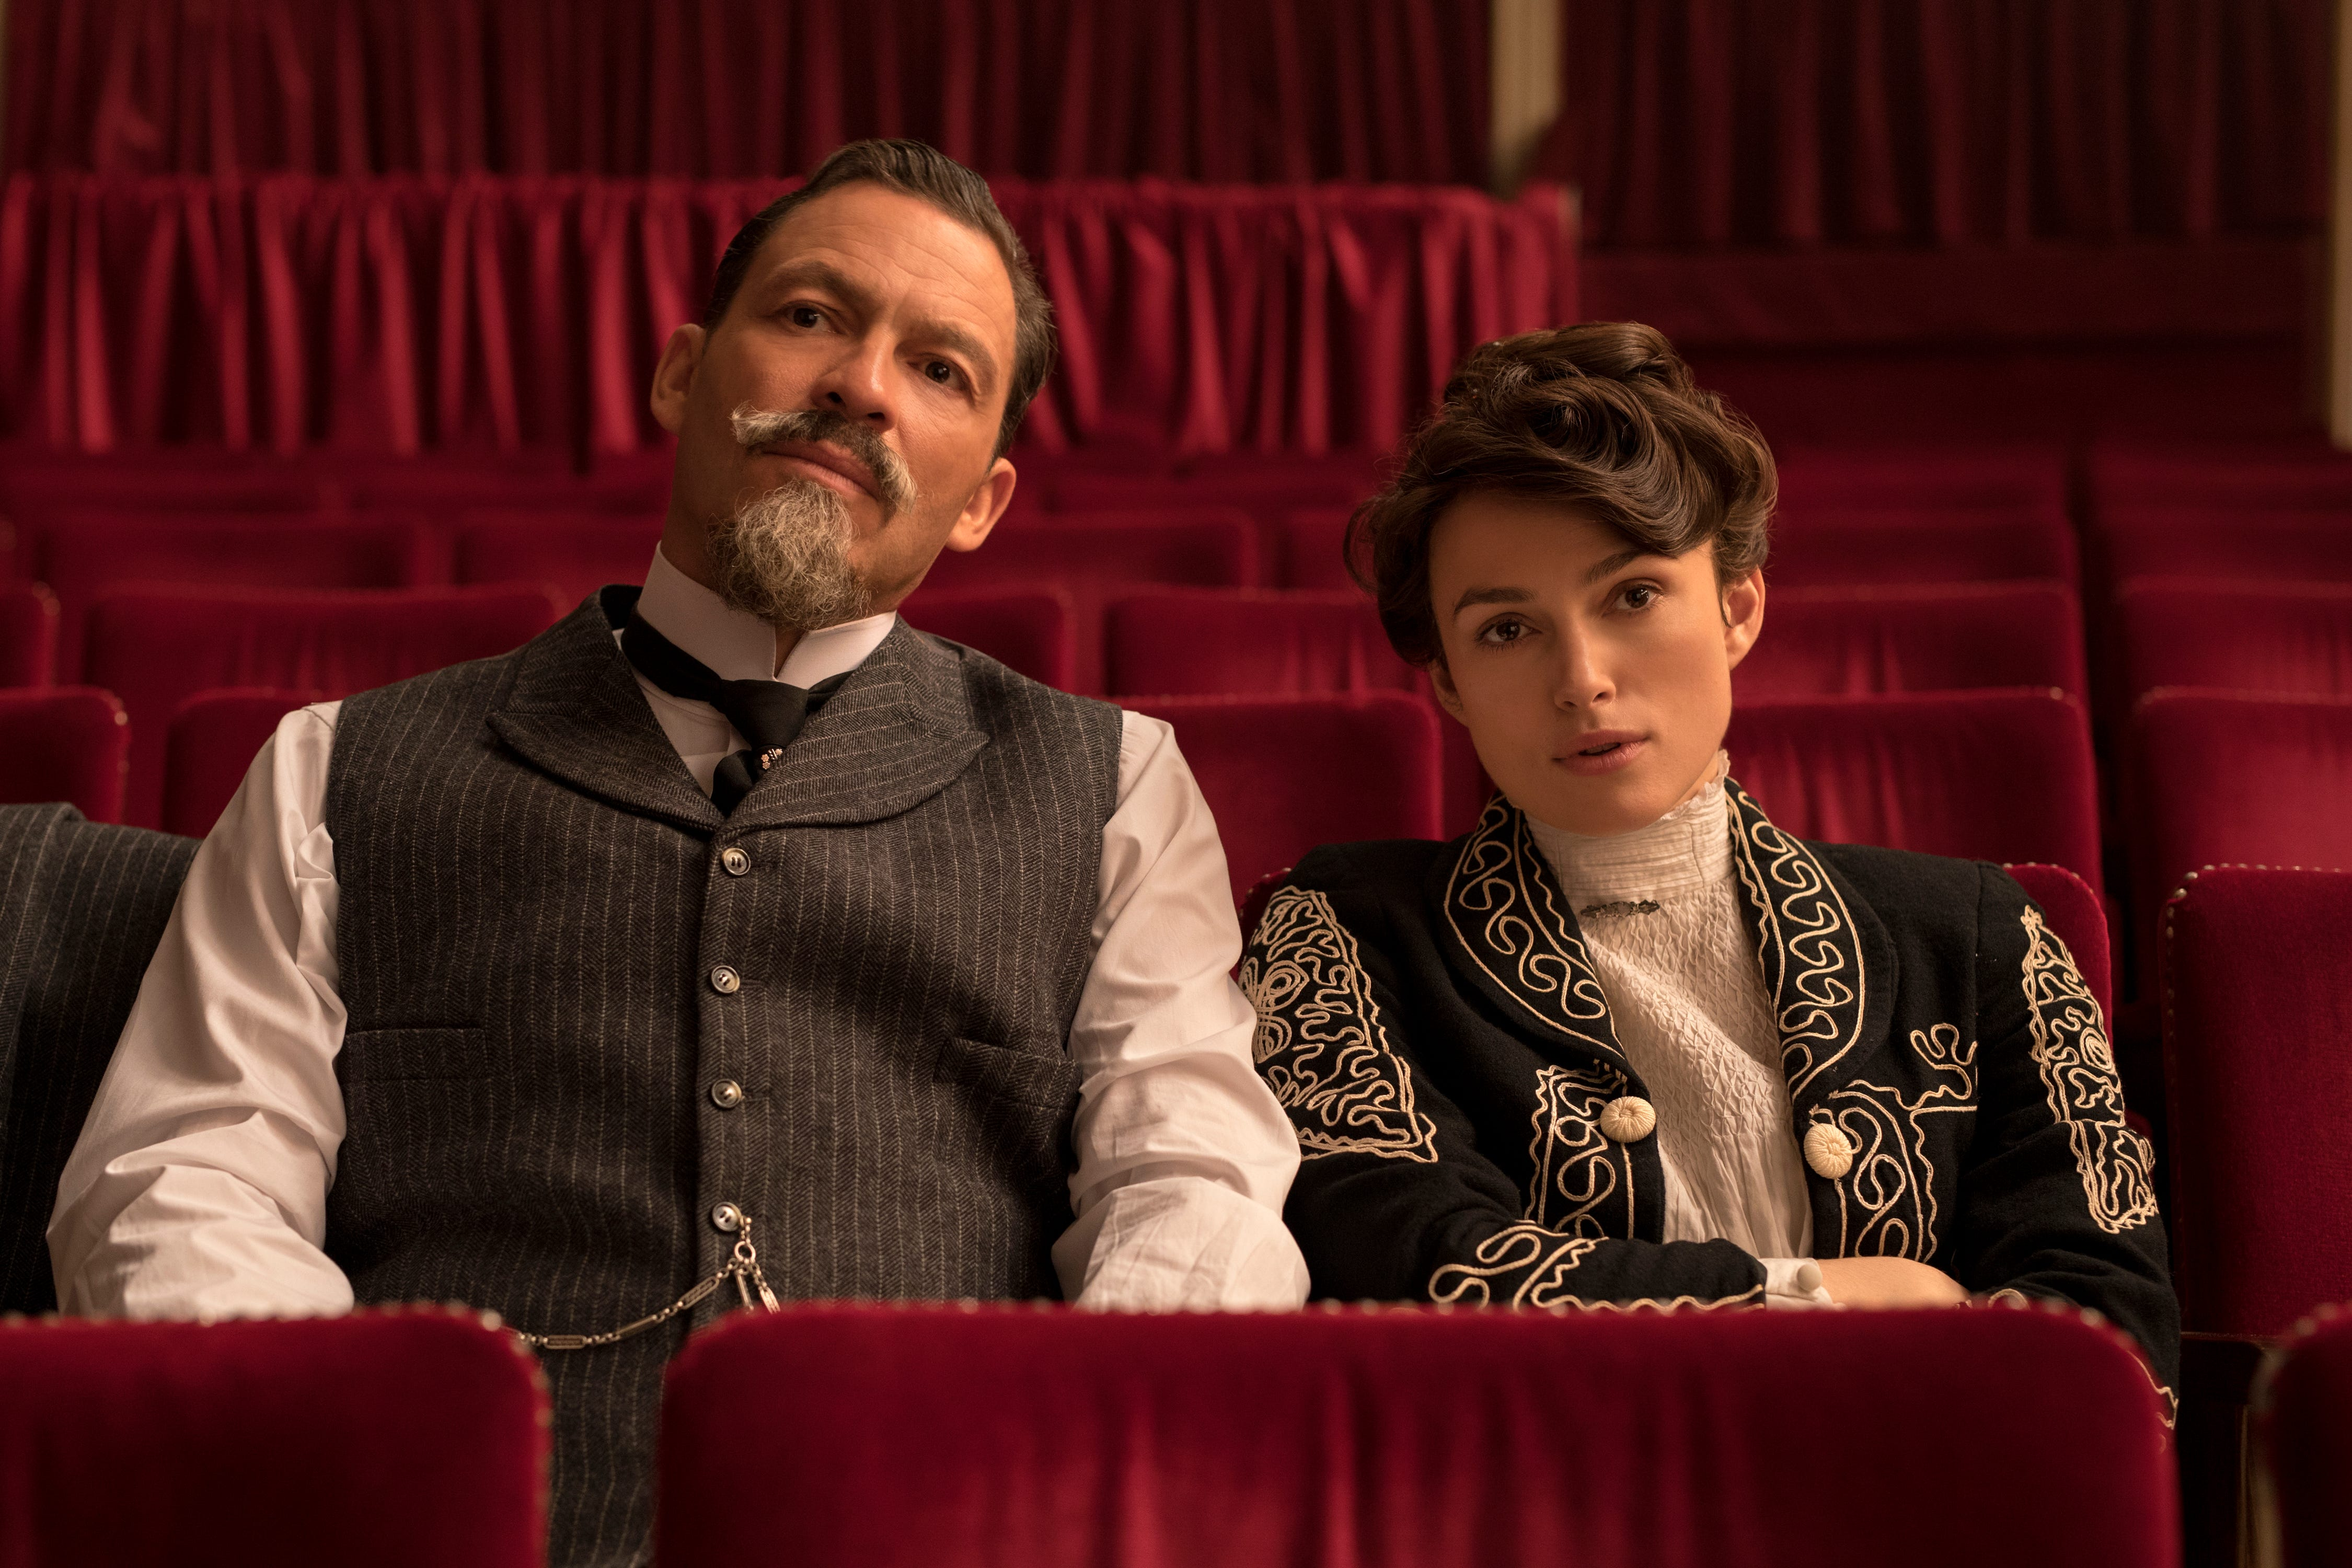 """Colette (Keira Knightley, right) seeks to find her own voice while writing under her husband's (Dominic West) name in """"Colette."""""""